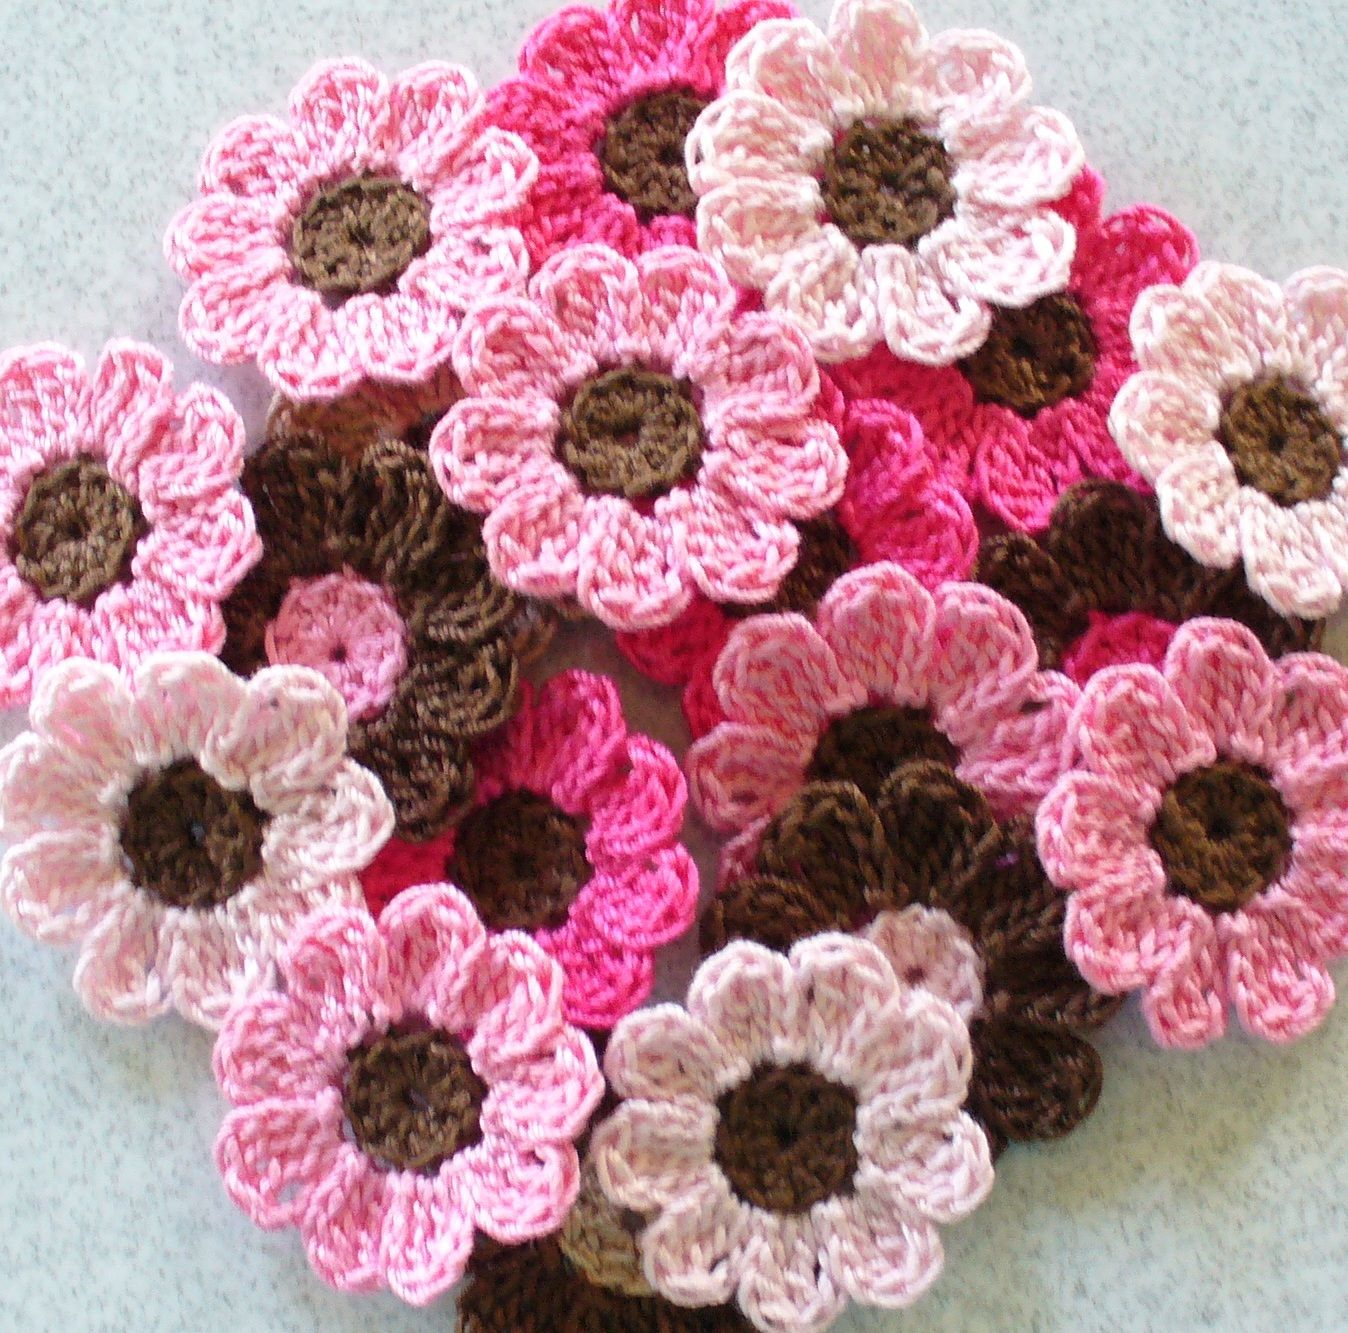 35 crochet flowers easy and bright colored crochet flowers 35 crochet flowers easy and bright colored crochet flowers life seasons bankloansurffo Images